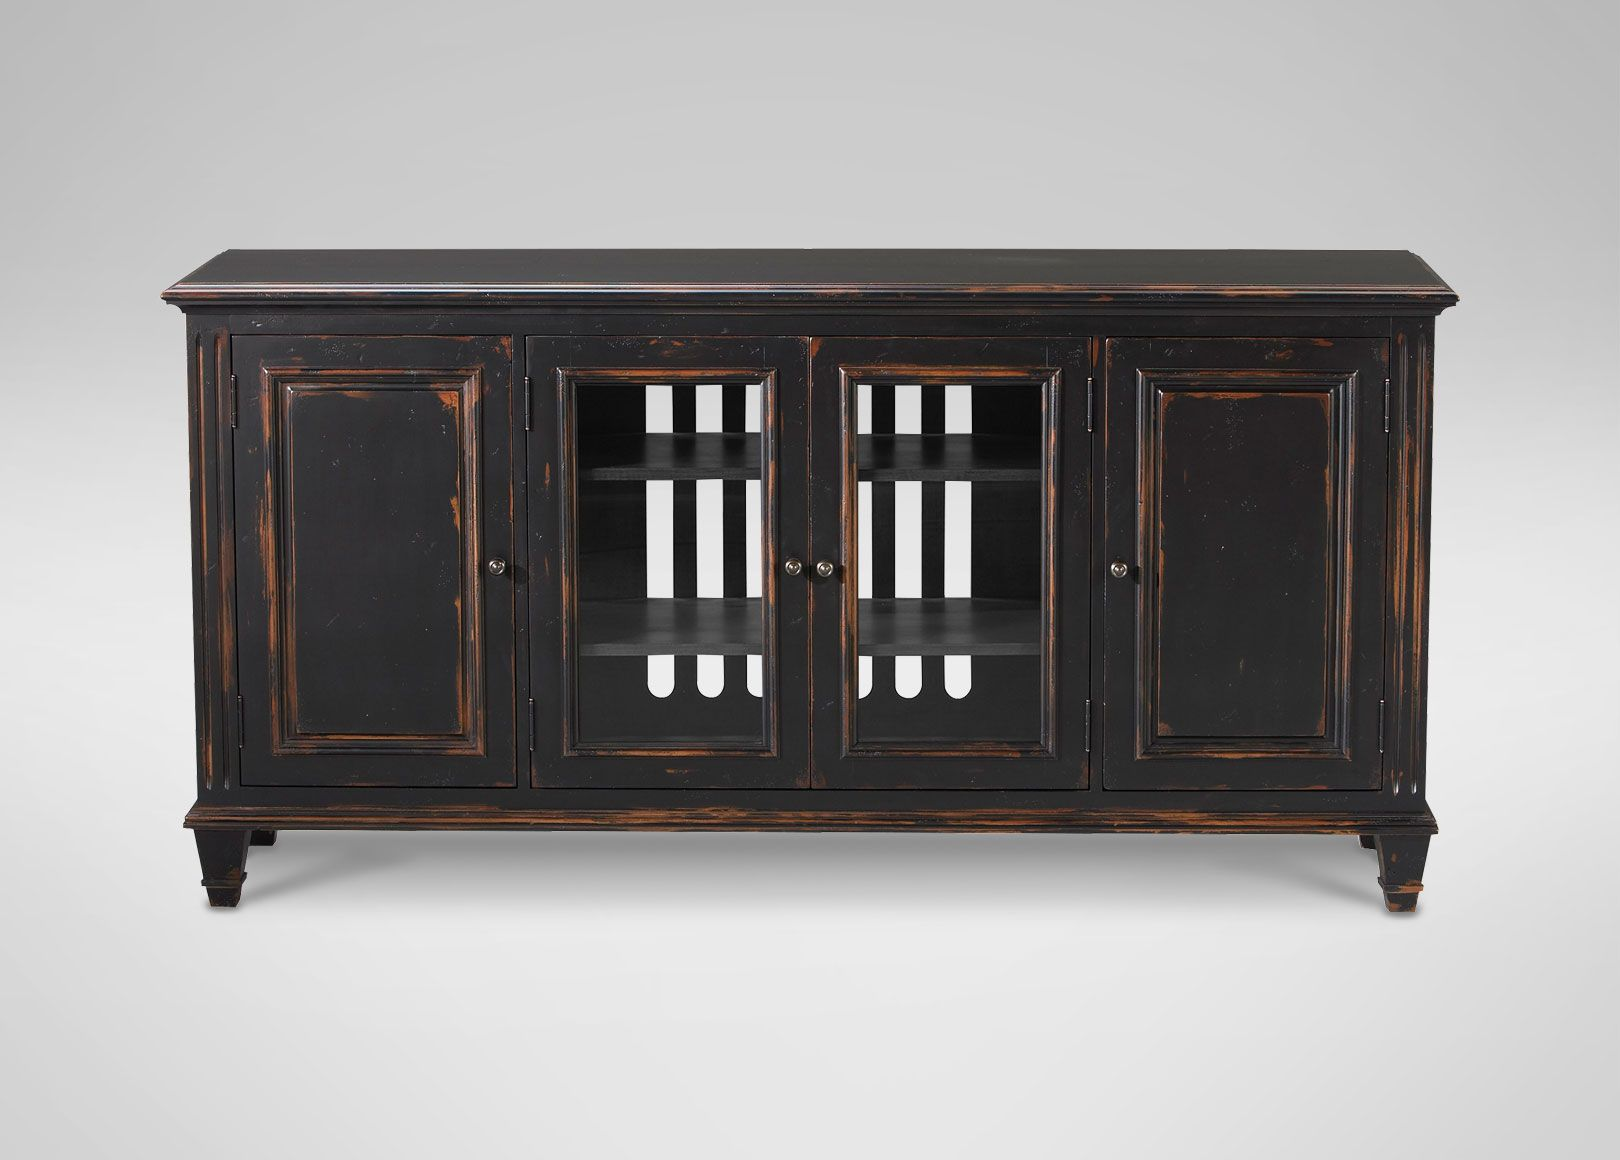 Buy Ethan Allens Jason Buffet With Glass Doors Or Browse Other Products In Buffets Sideboards Servers